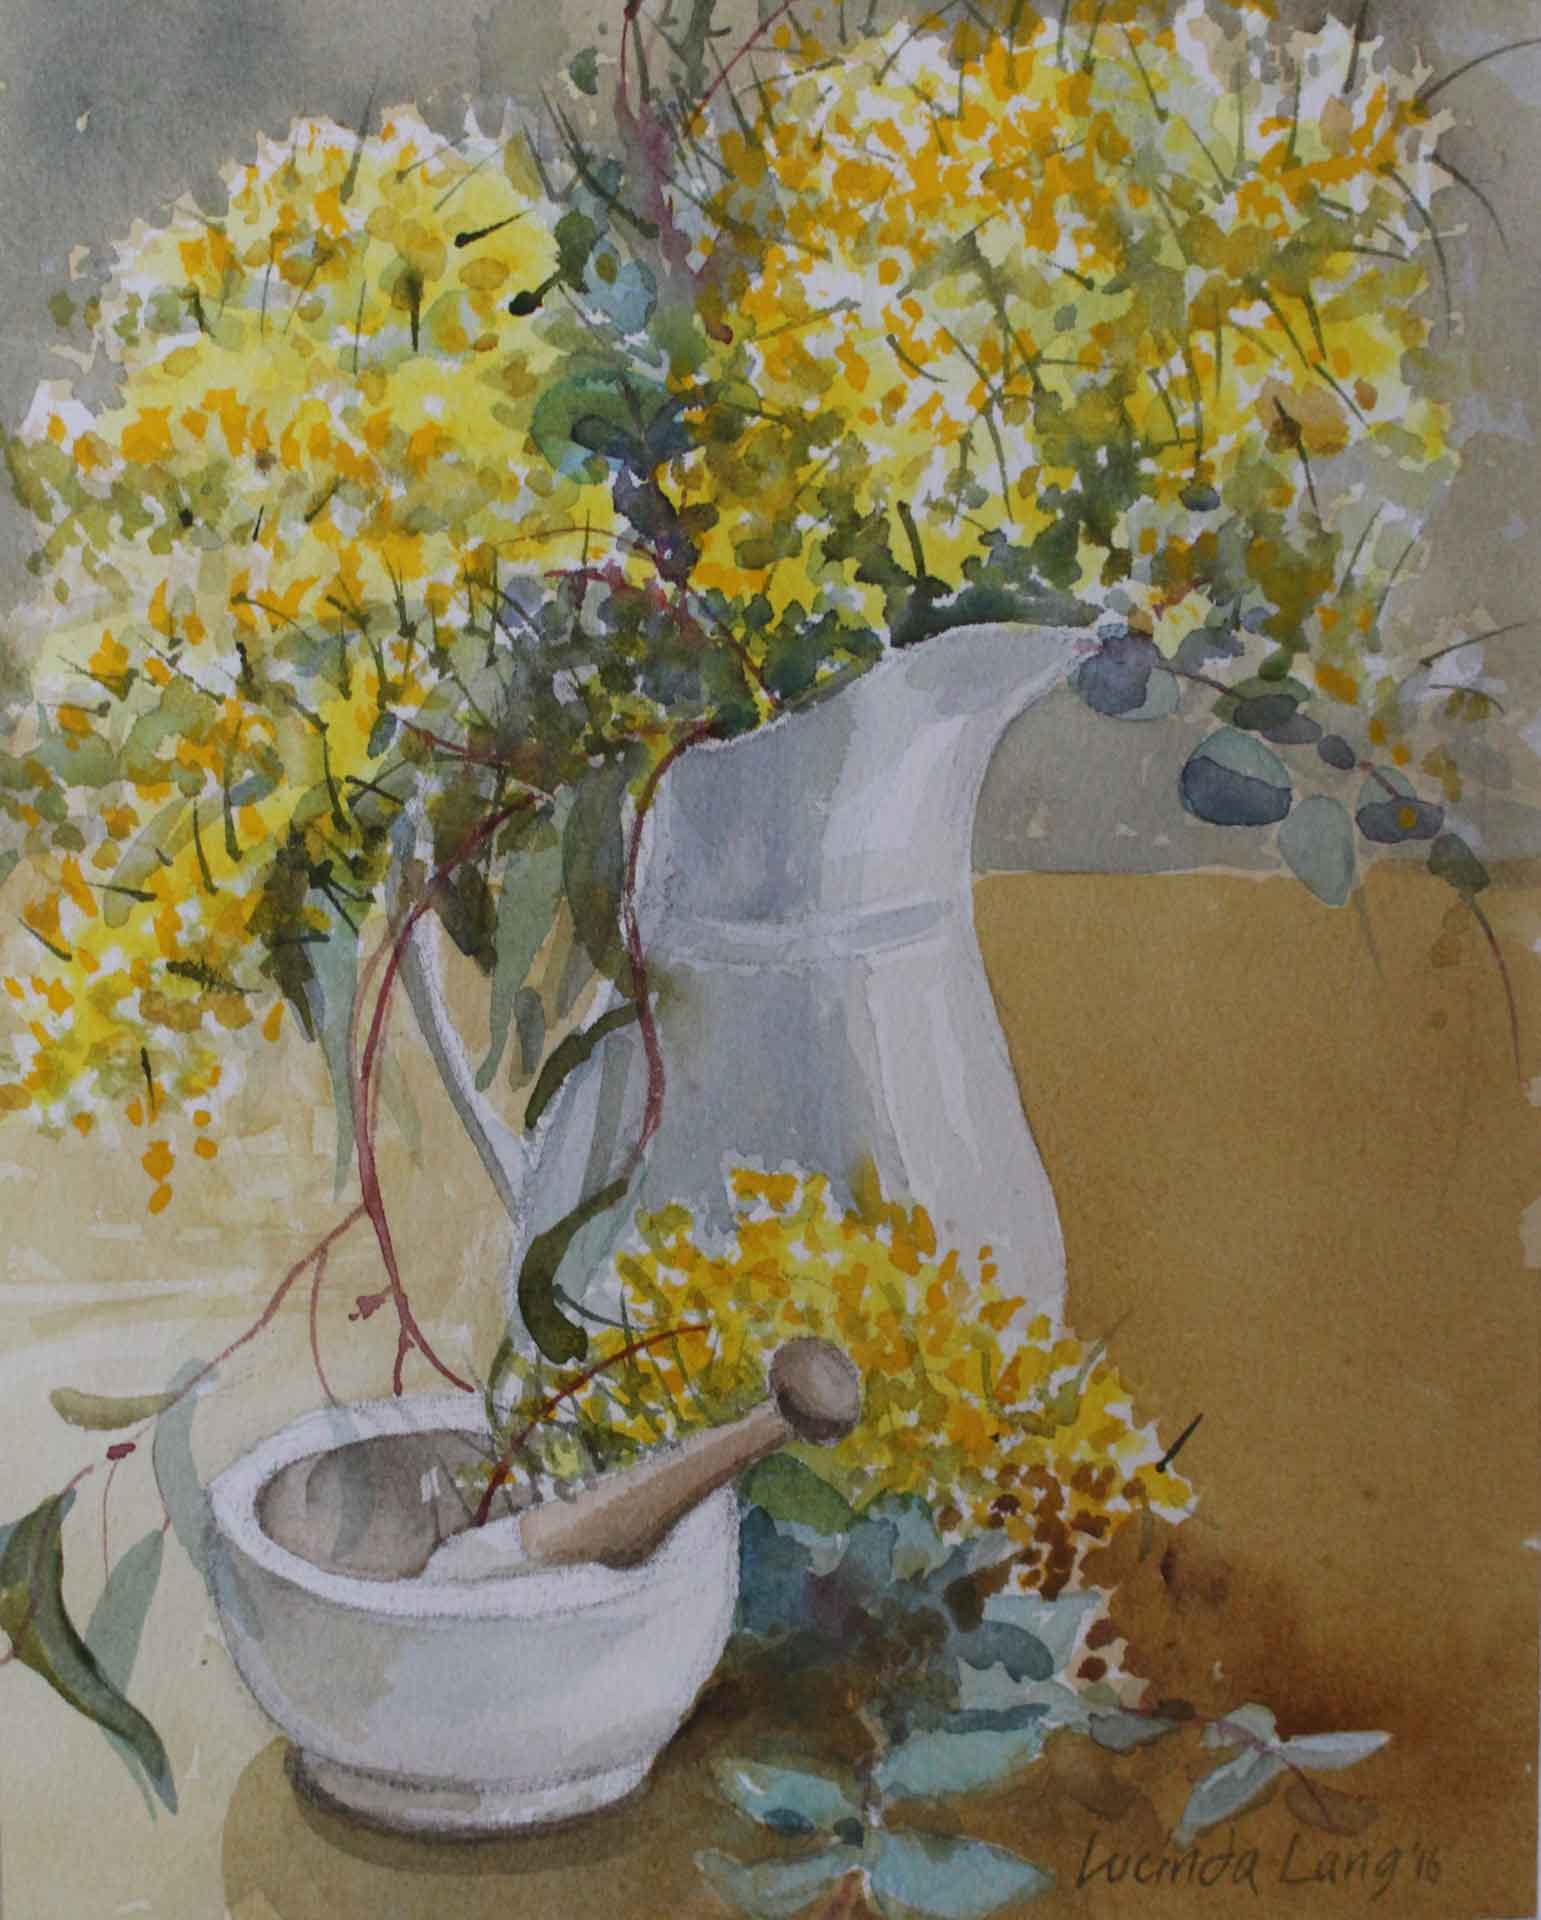 Wattle, pestle and mortar